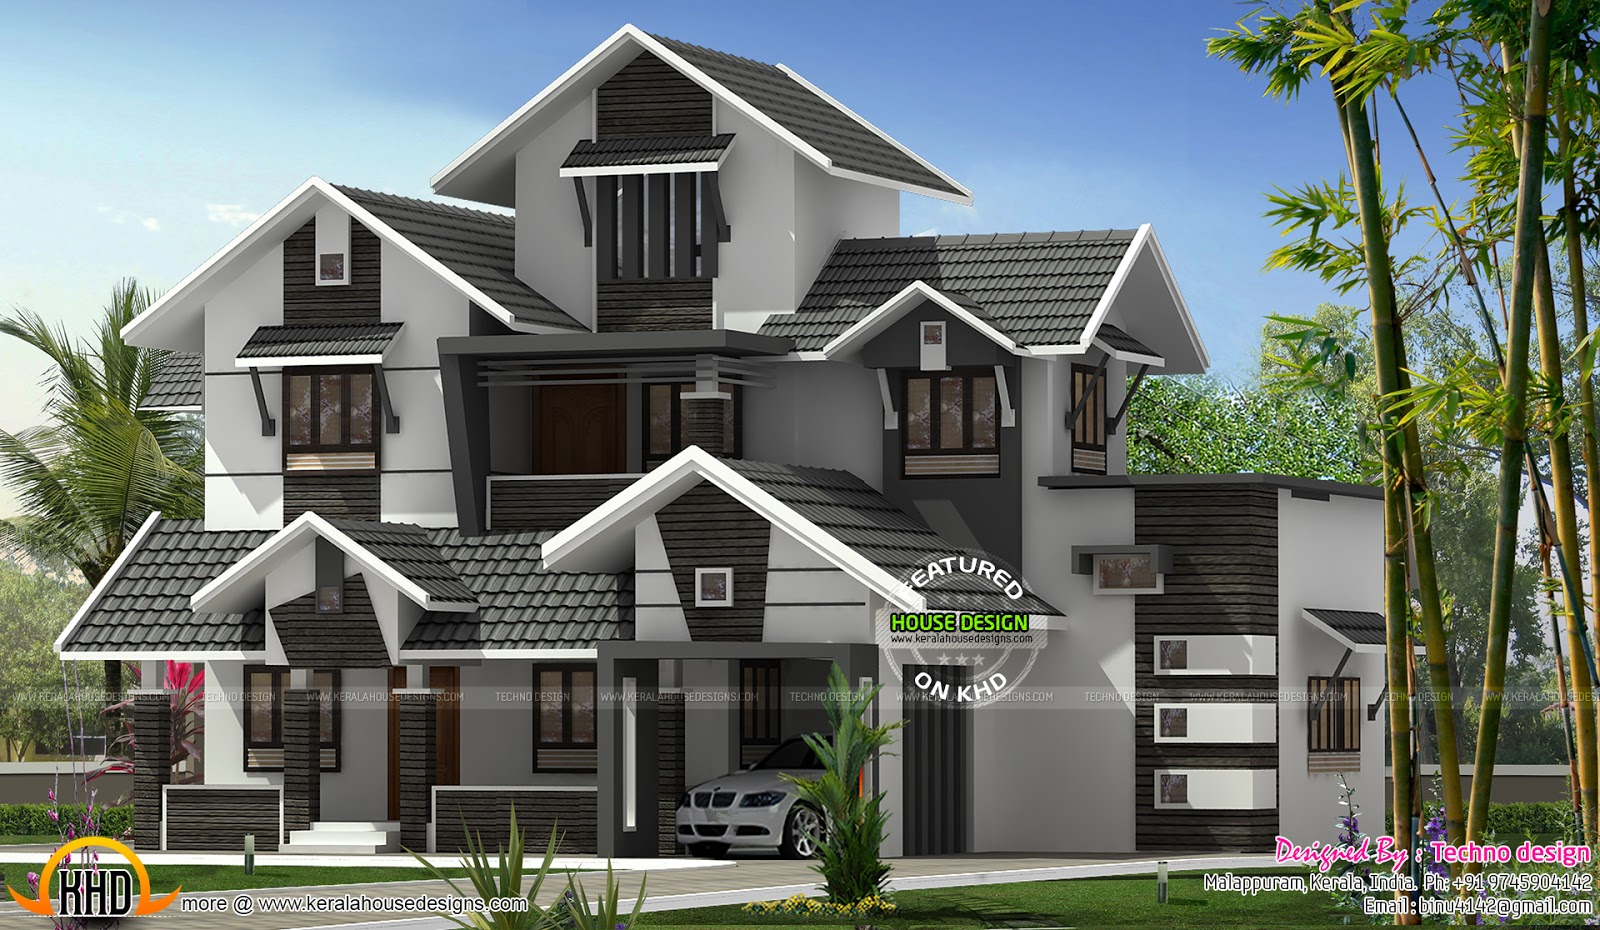 Modern kerala home design kerala home design and floor plans for Latest house designs in kerala